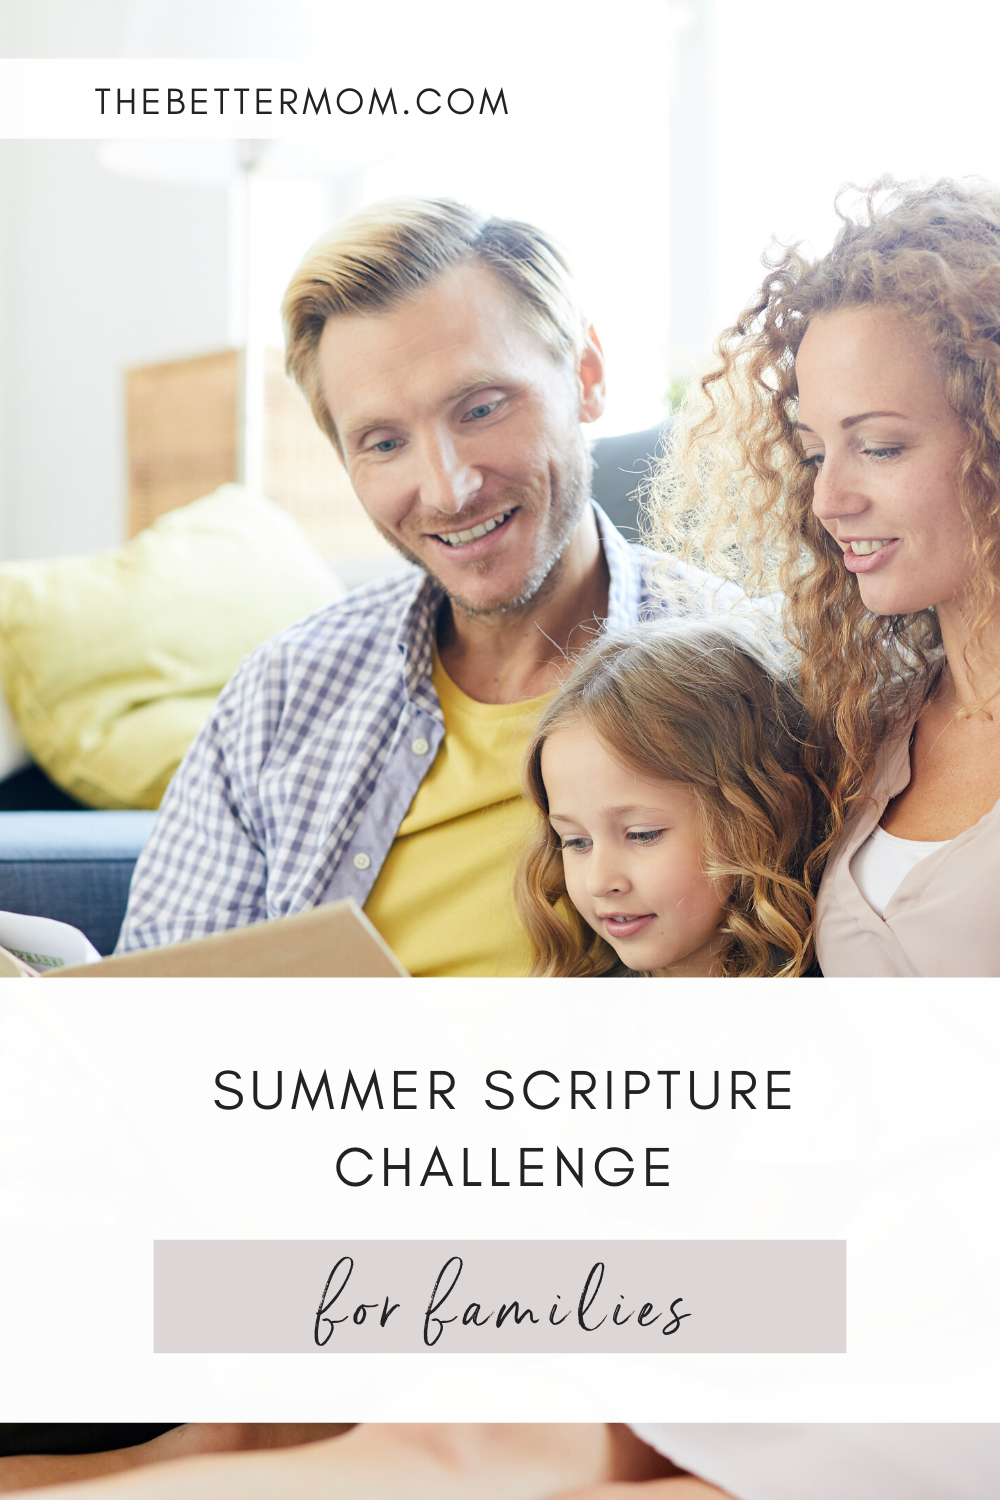 A lot of our plans have been canceled this summer, and it's the perfect time to gather the family for a Bible study! This Summer Scripture Challenge will help keep the Lord's word at the center of our families this season!